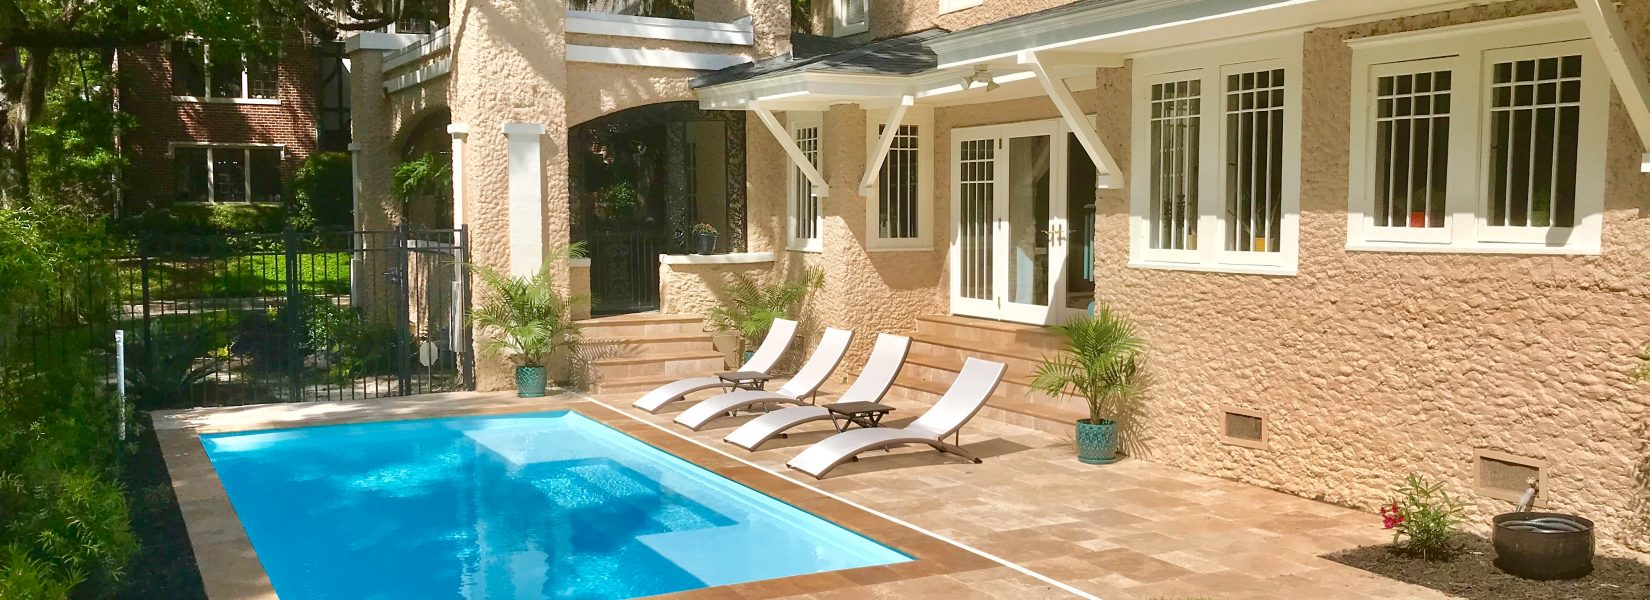 "The Broadway is an elegant & modern fiberglass pool design. It comes standard with a maximum depth of 4' and two tanning ledges that are 8.5"" deep."